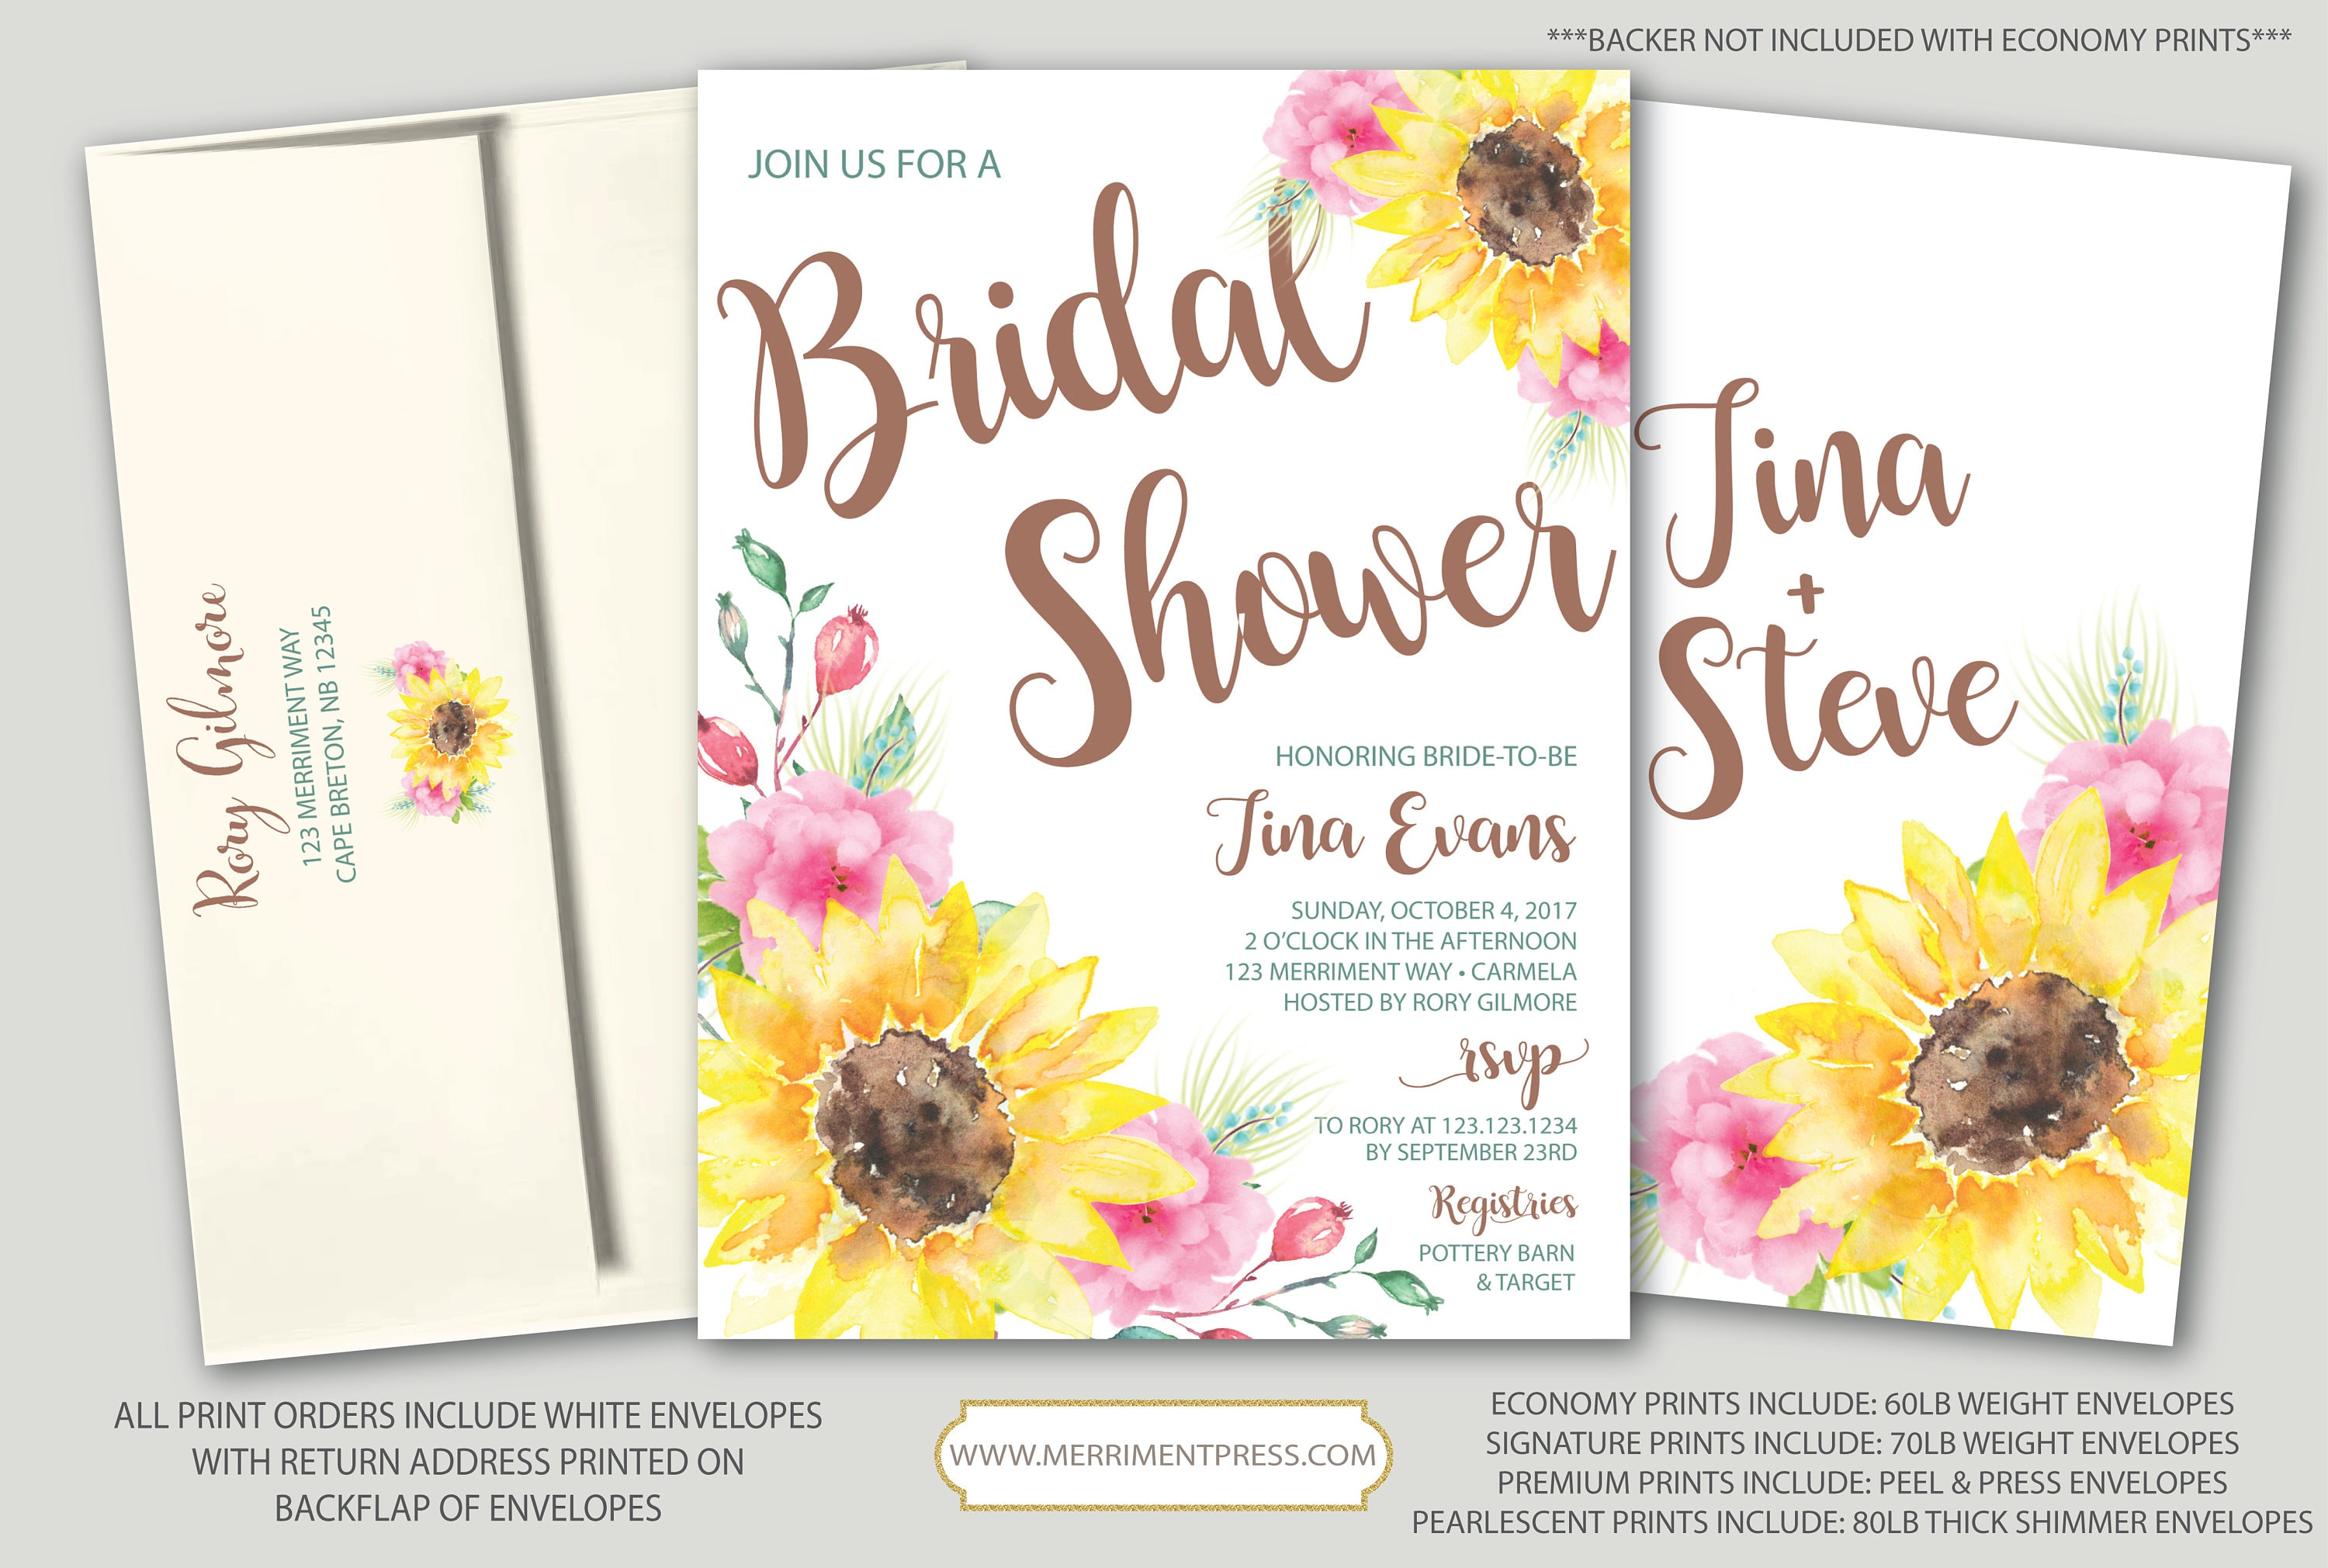 Rustic sunflower bridal shower invitation fall in love fall rustic sunflower bridal shower invitation fall in love fall bridal shower invitation yellow pink tuscany collection filmwisefo